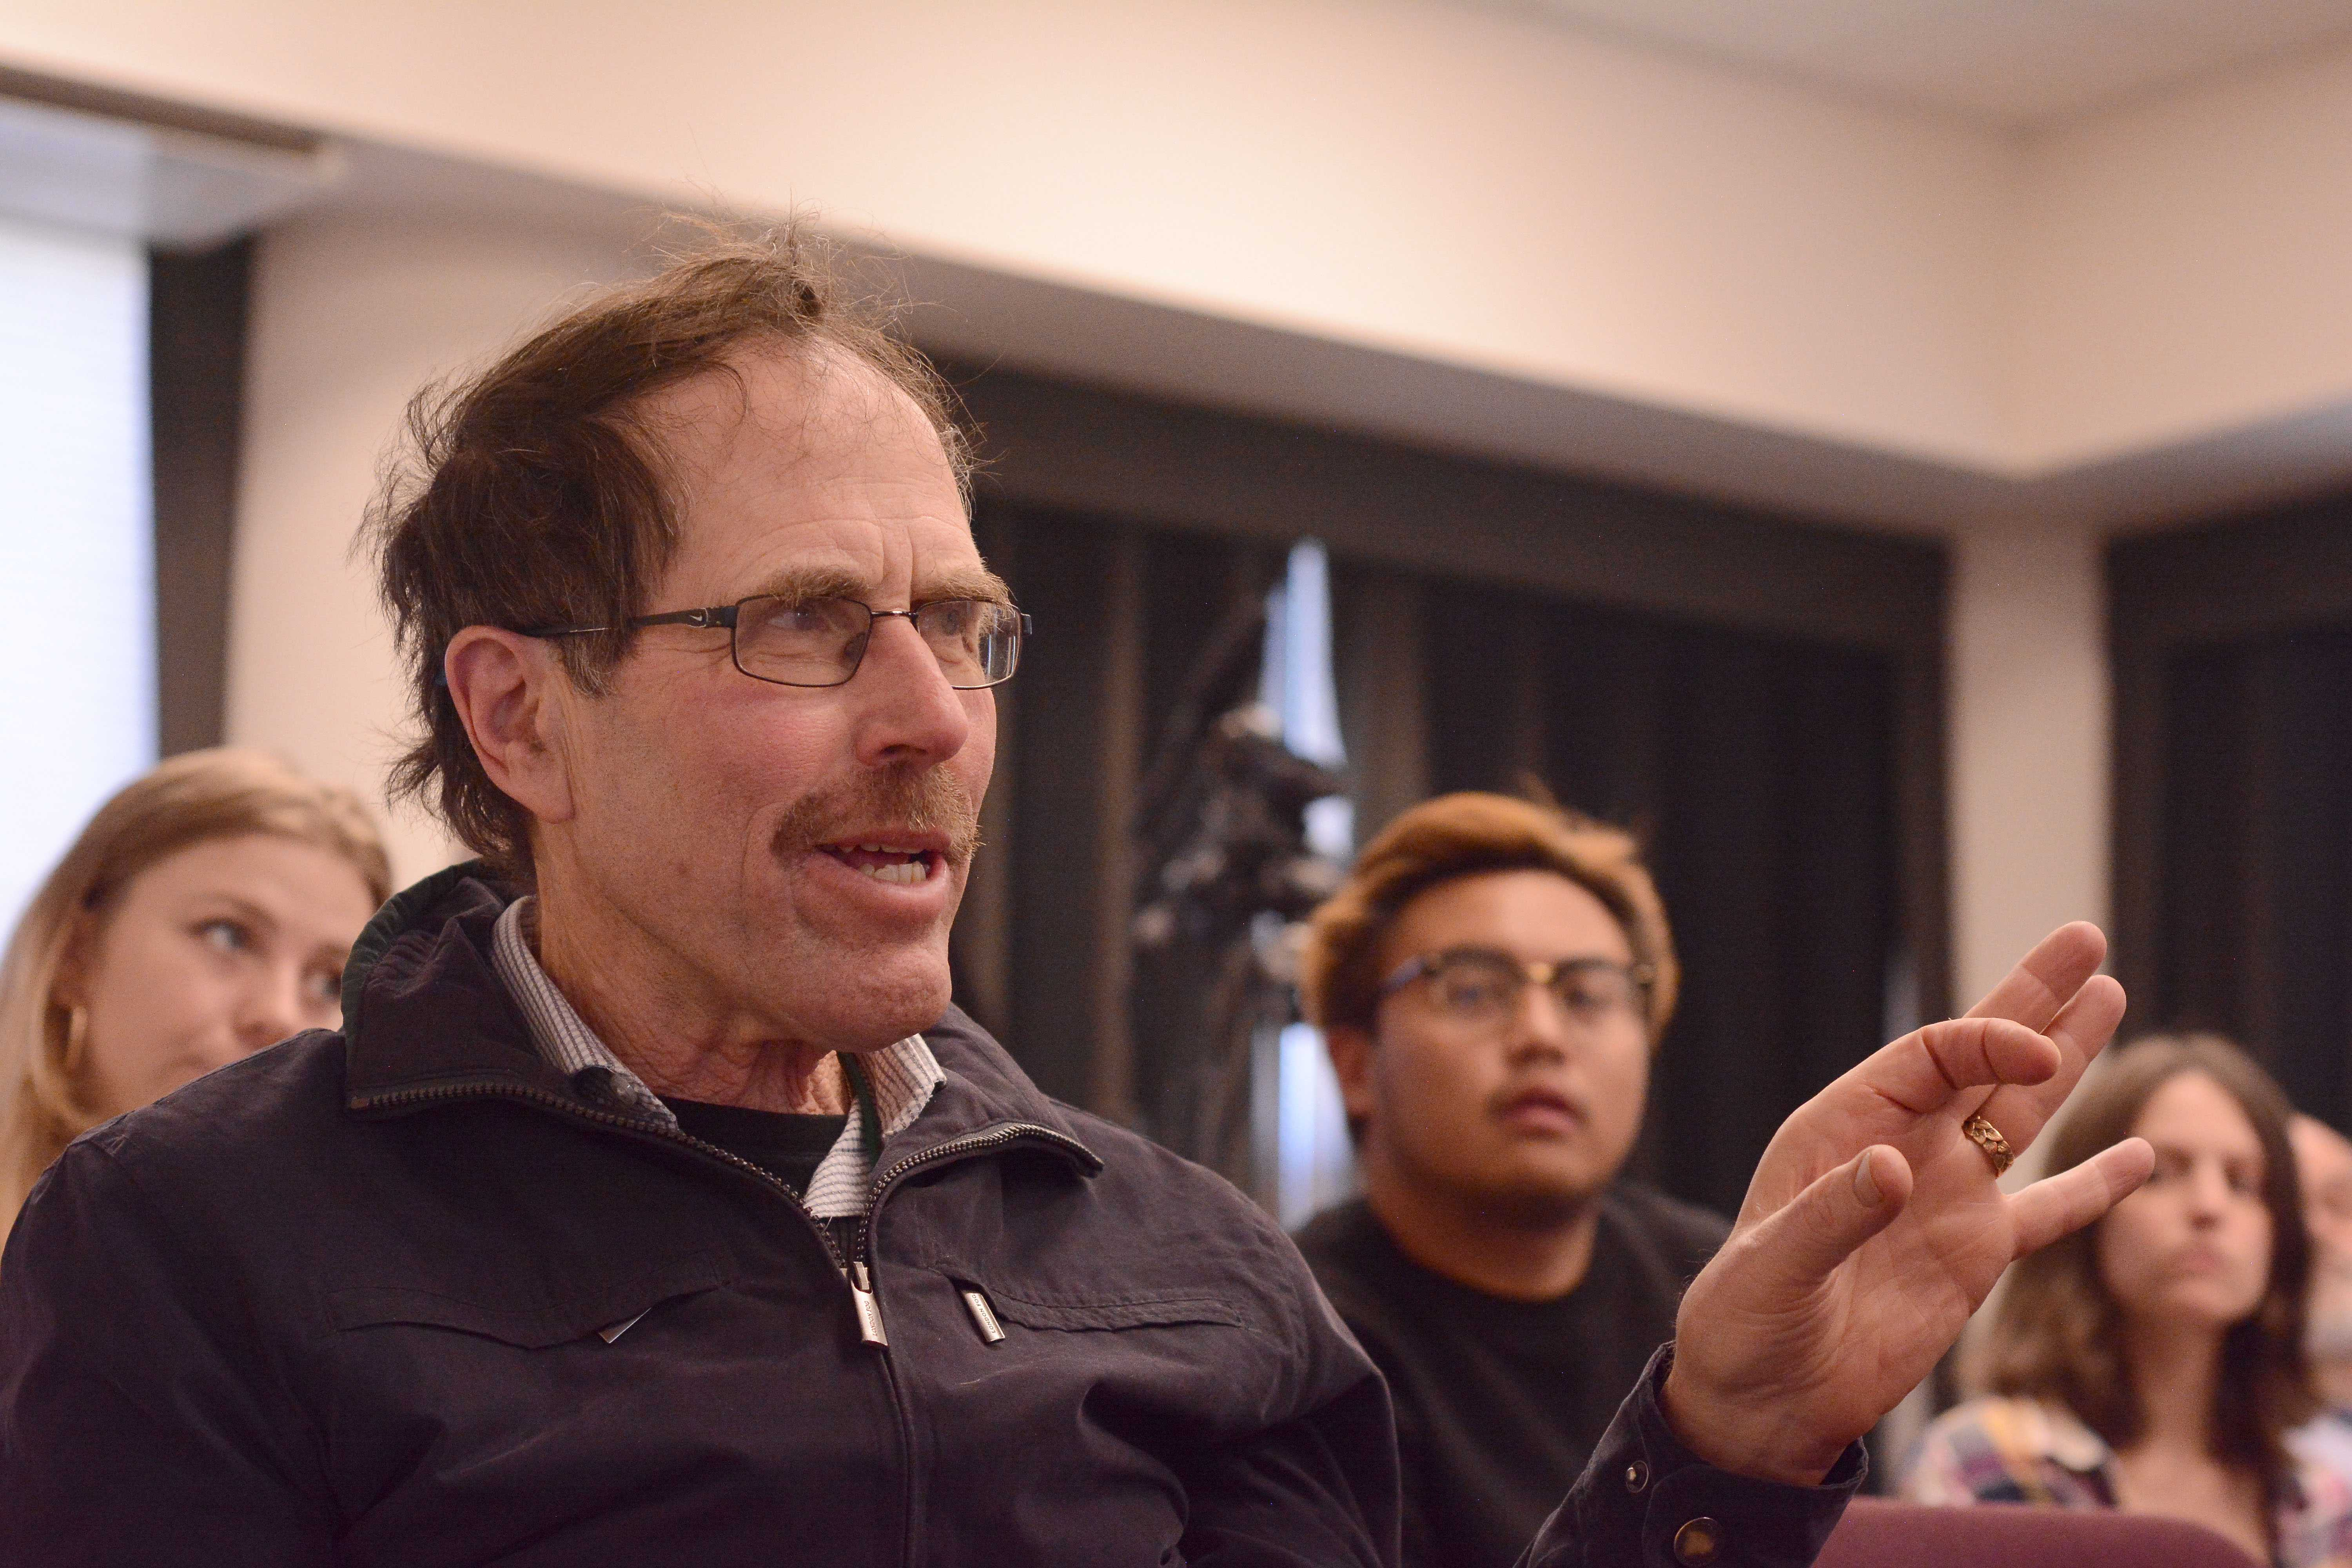 Lee Heidhues, a former journalist on The Gator newspaper and 1969 SFSU alumnus, asks a question to a panel of Xpress editors during the SFSU journalism department's event commemorating the fiftieth anniversary of the 1968 Strike at SF State in San Francisco, Calif. on Wednesday, Nov. 14, 2018. (Aaron Levy-Wolins/Golden Gate Xpress)